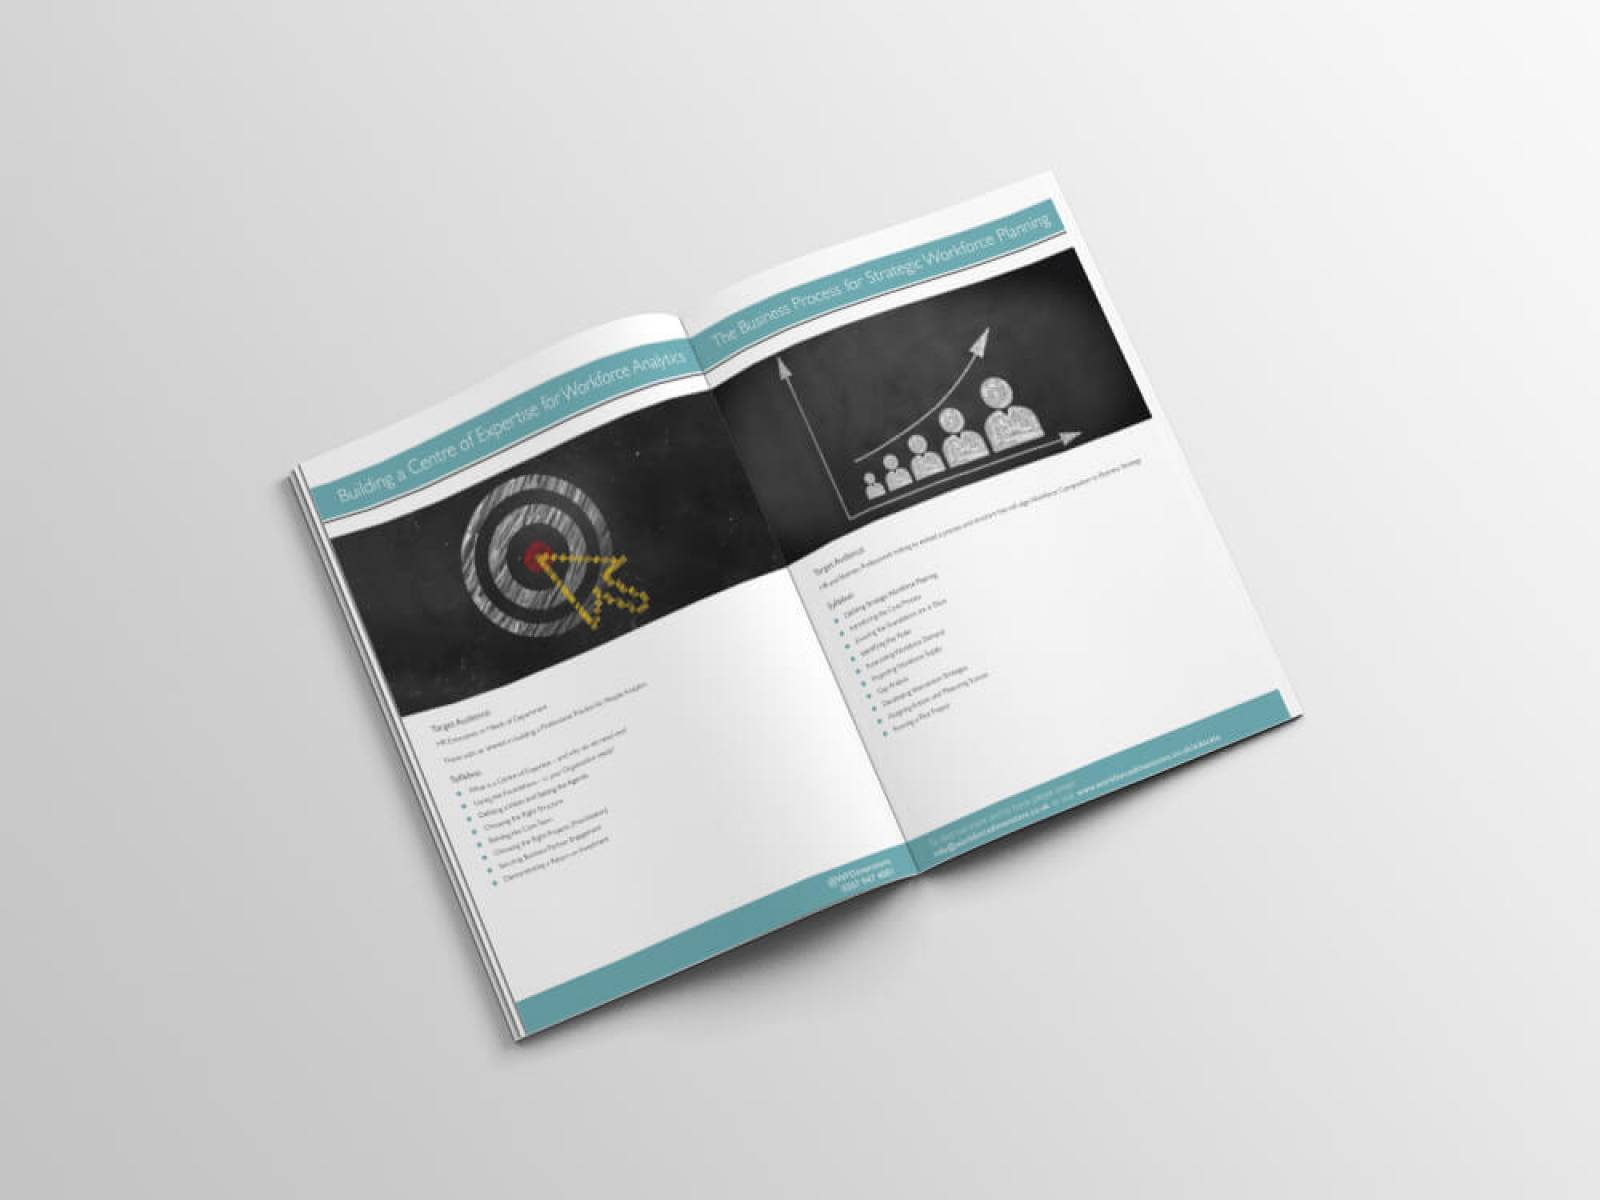 Workforce-dimensions-flyer-3-design-agency-graphic-design-canterbury.jpg